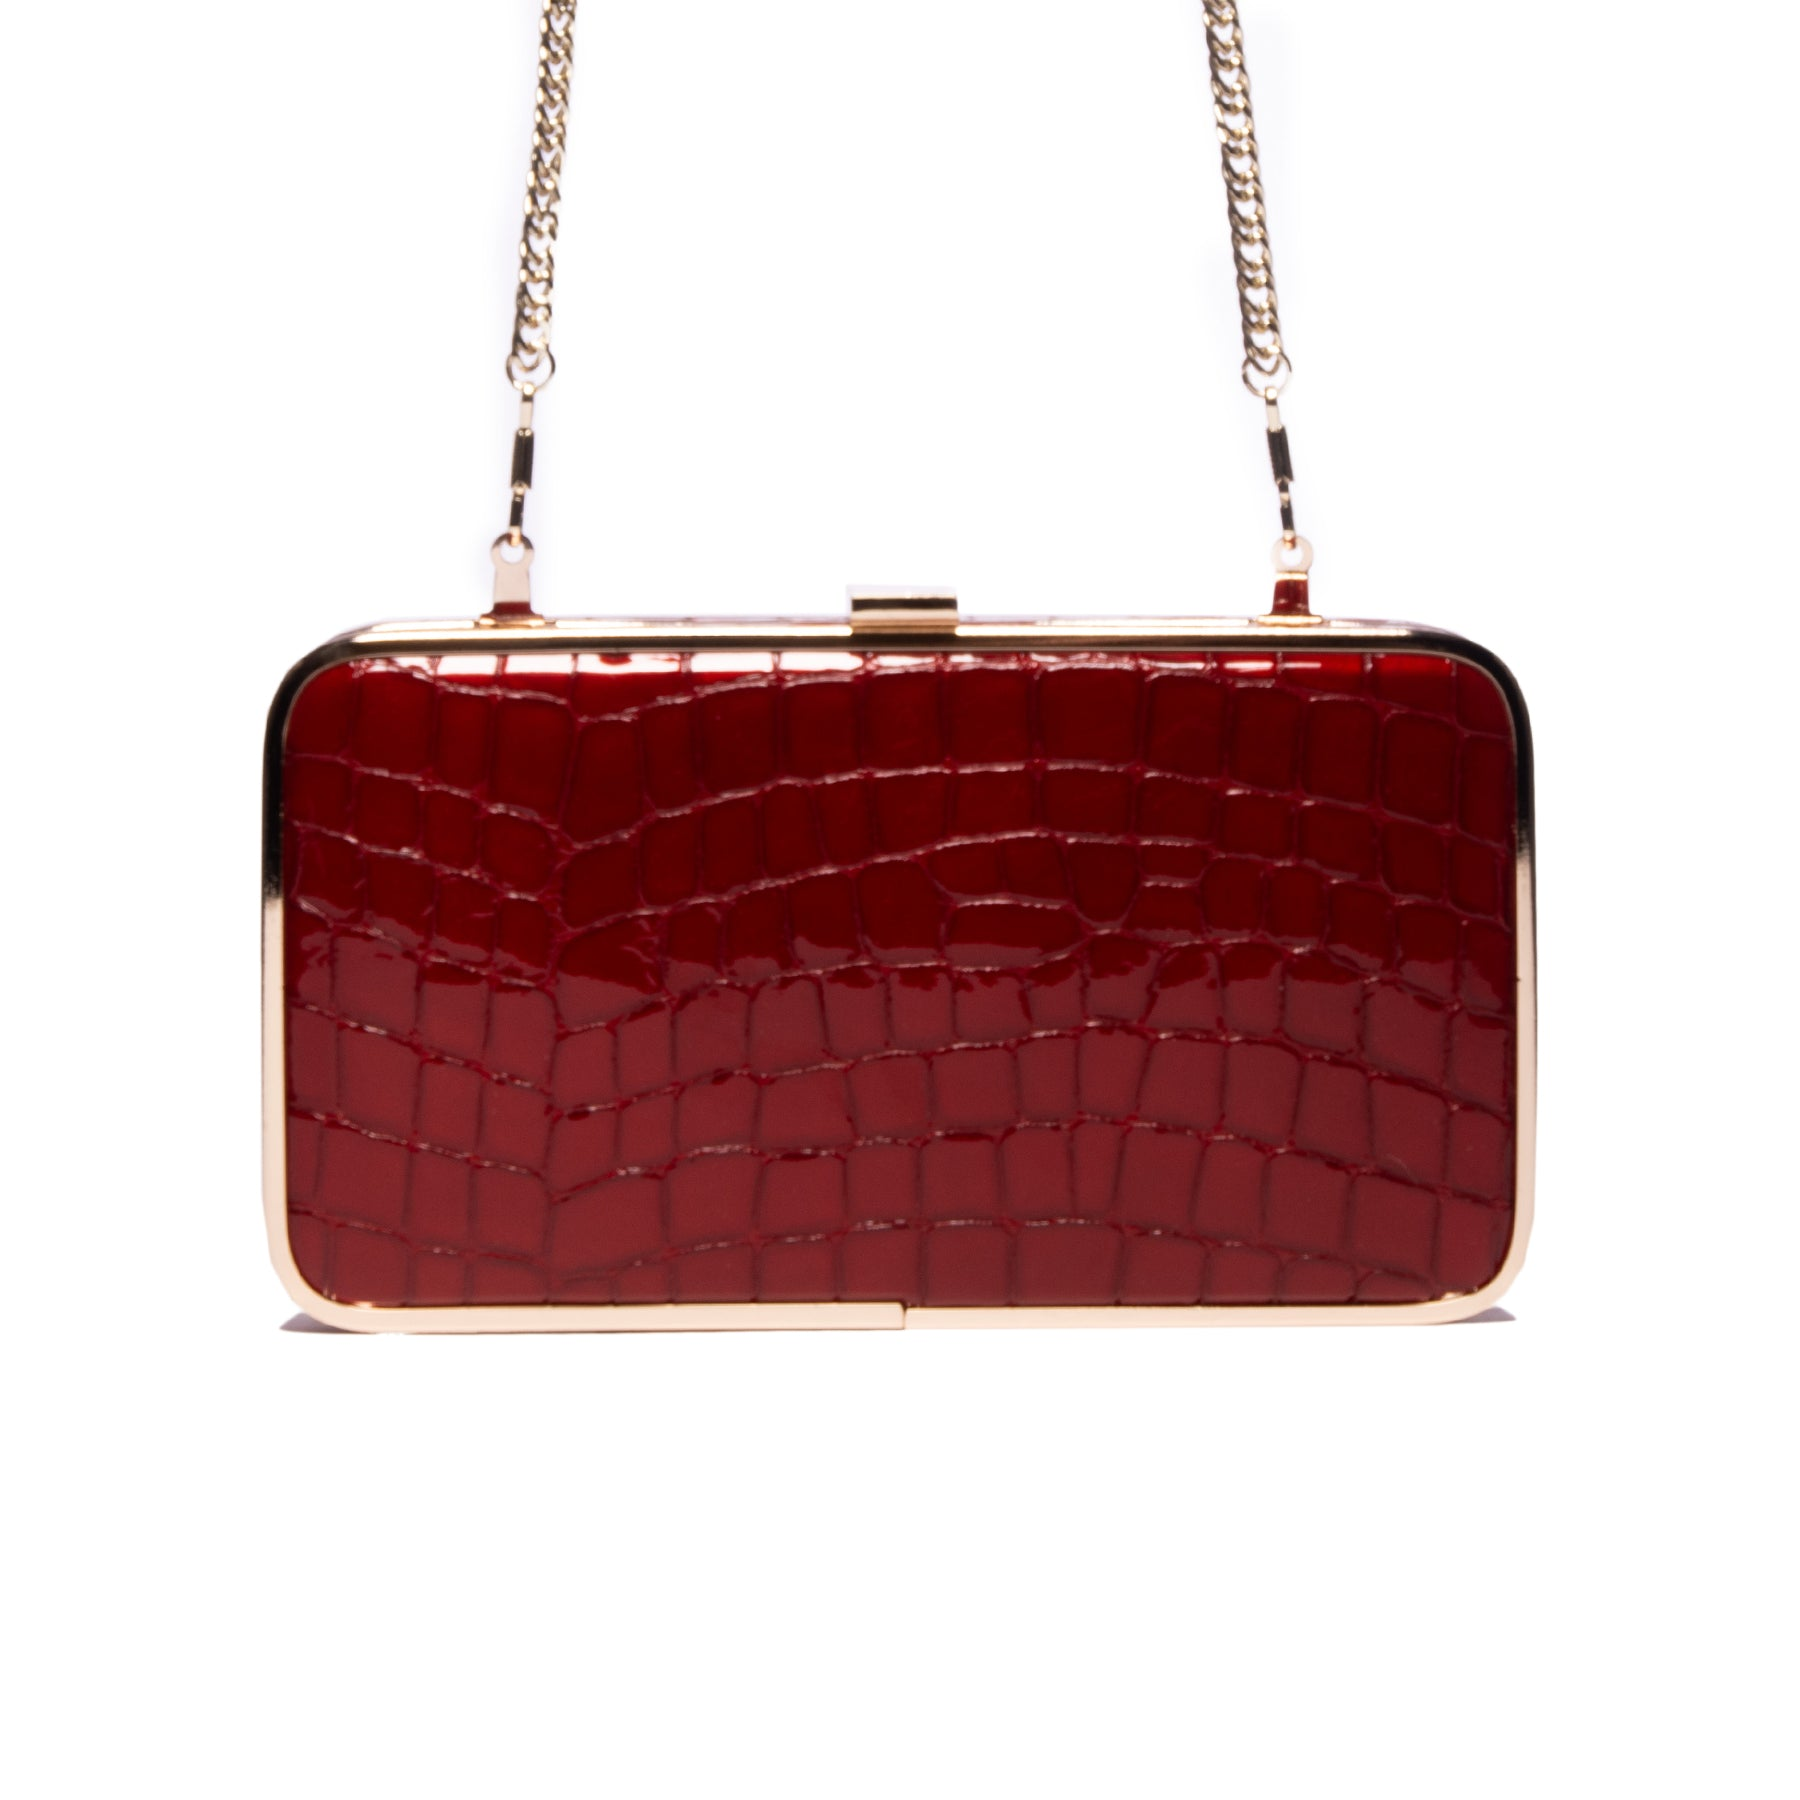 Thais Red Croco Leather Clutch